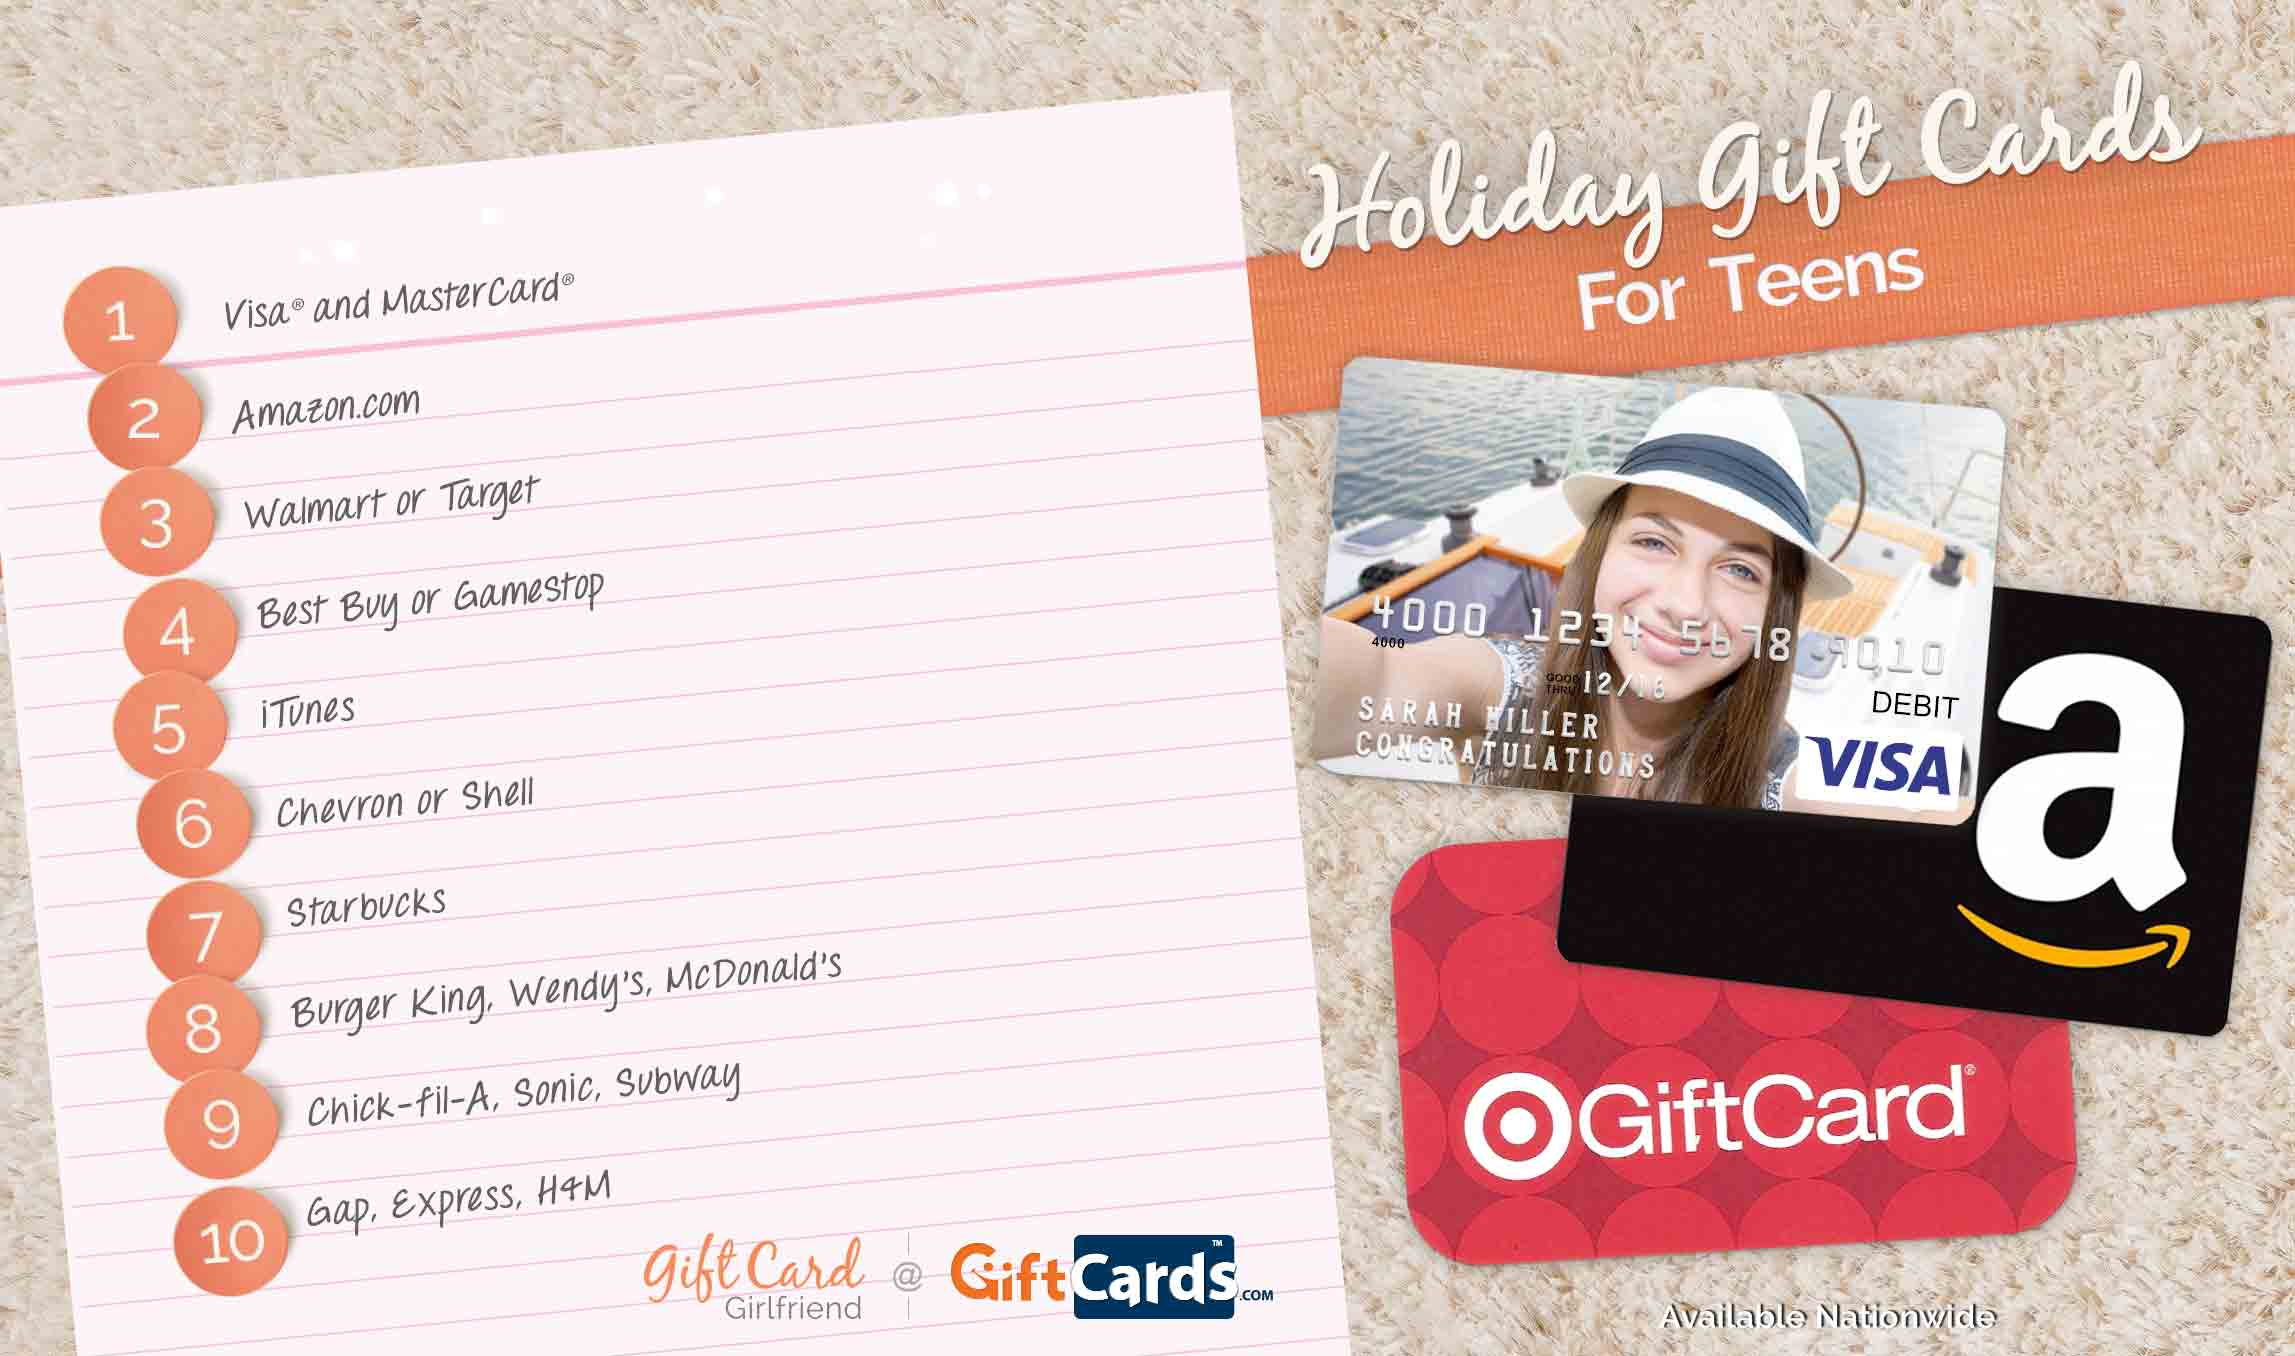 top gift cards for teens - Gift Card Places